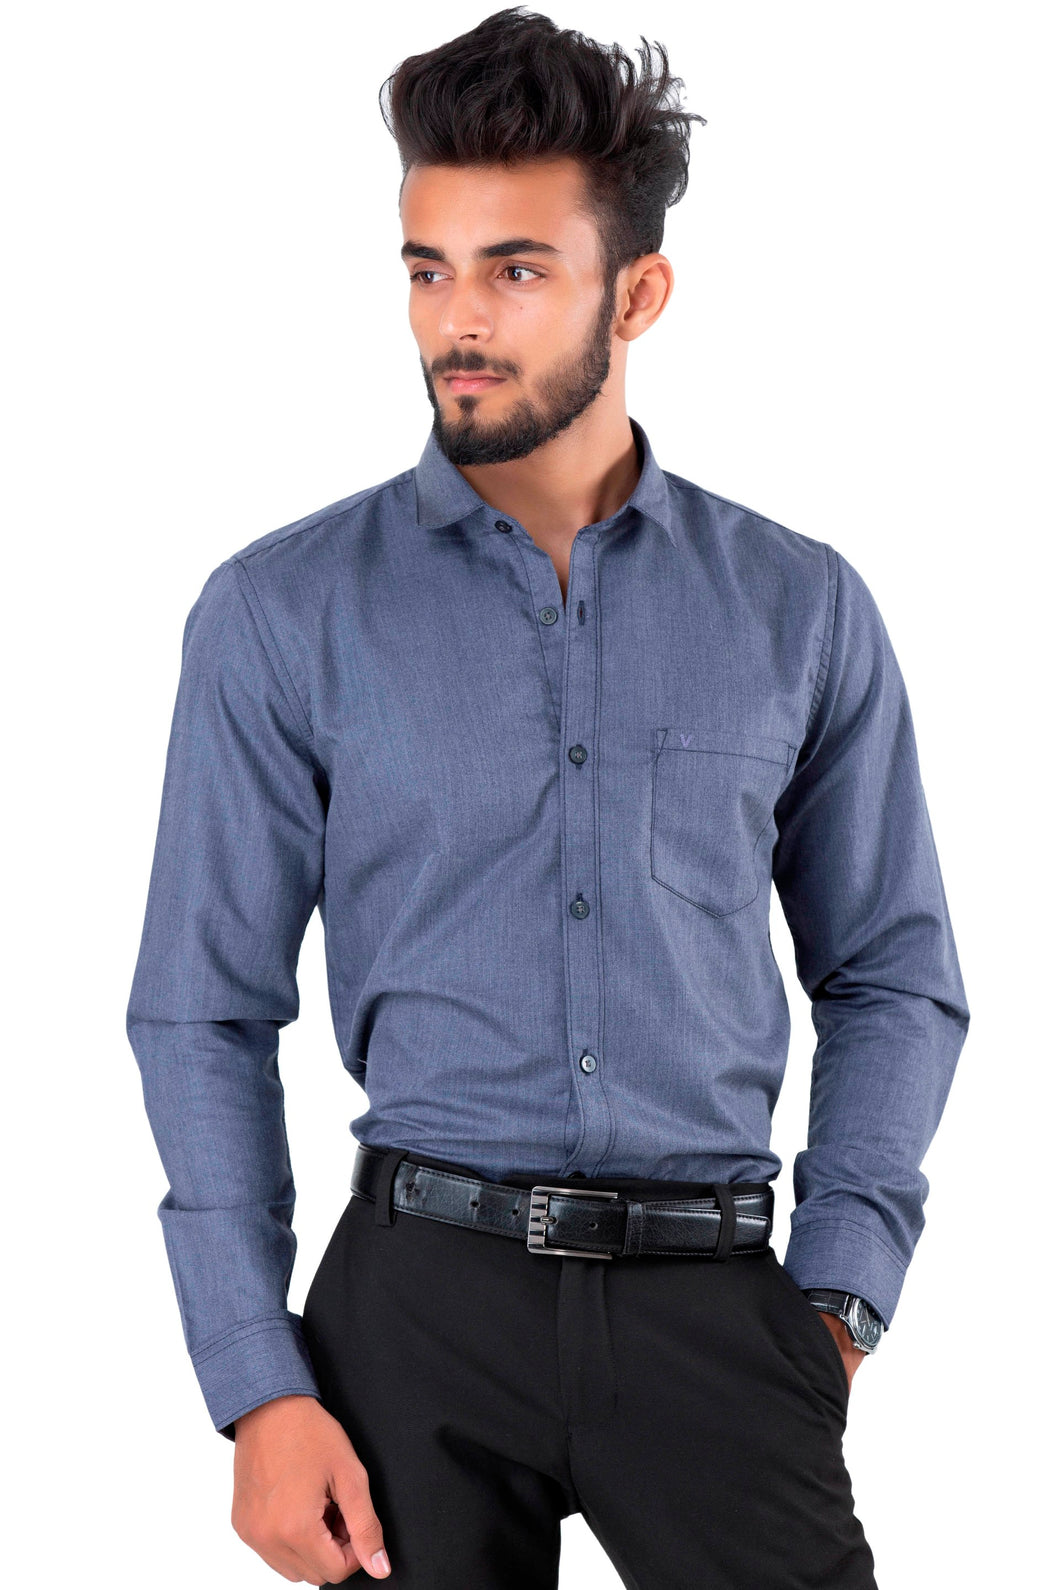 Full Sleeve Charcoal Casual Shirt